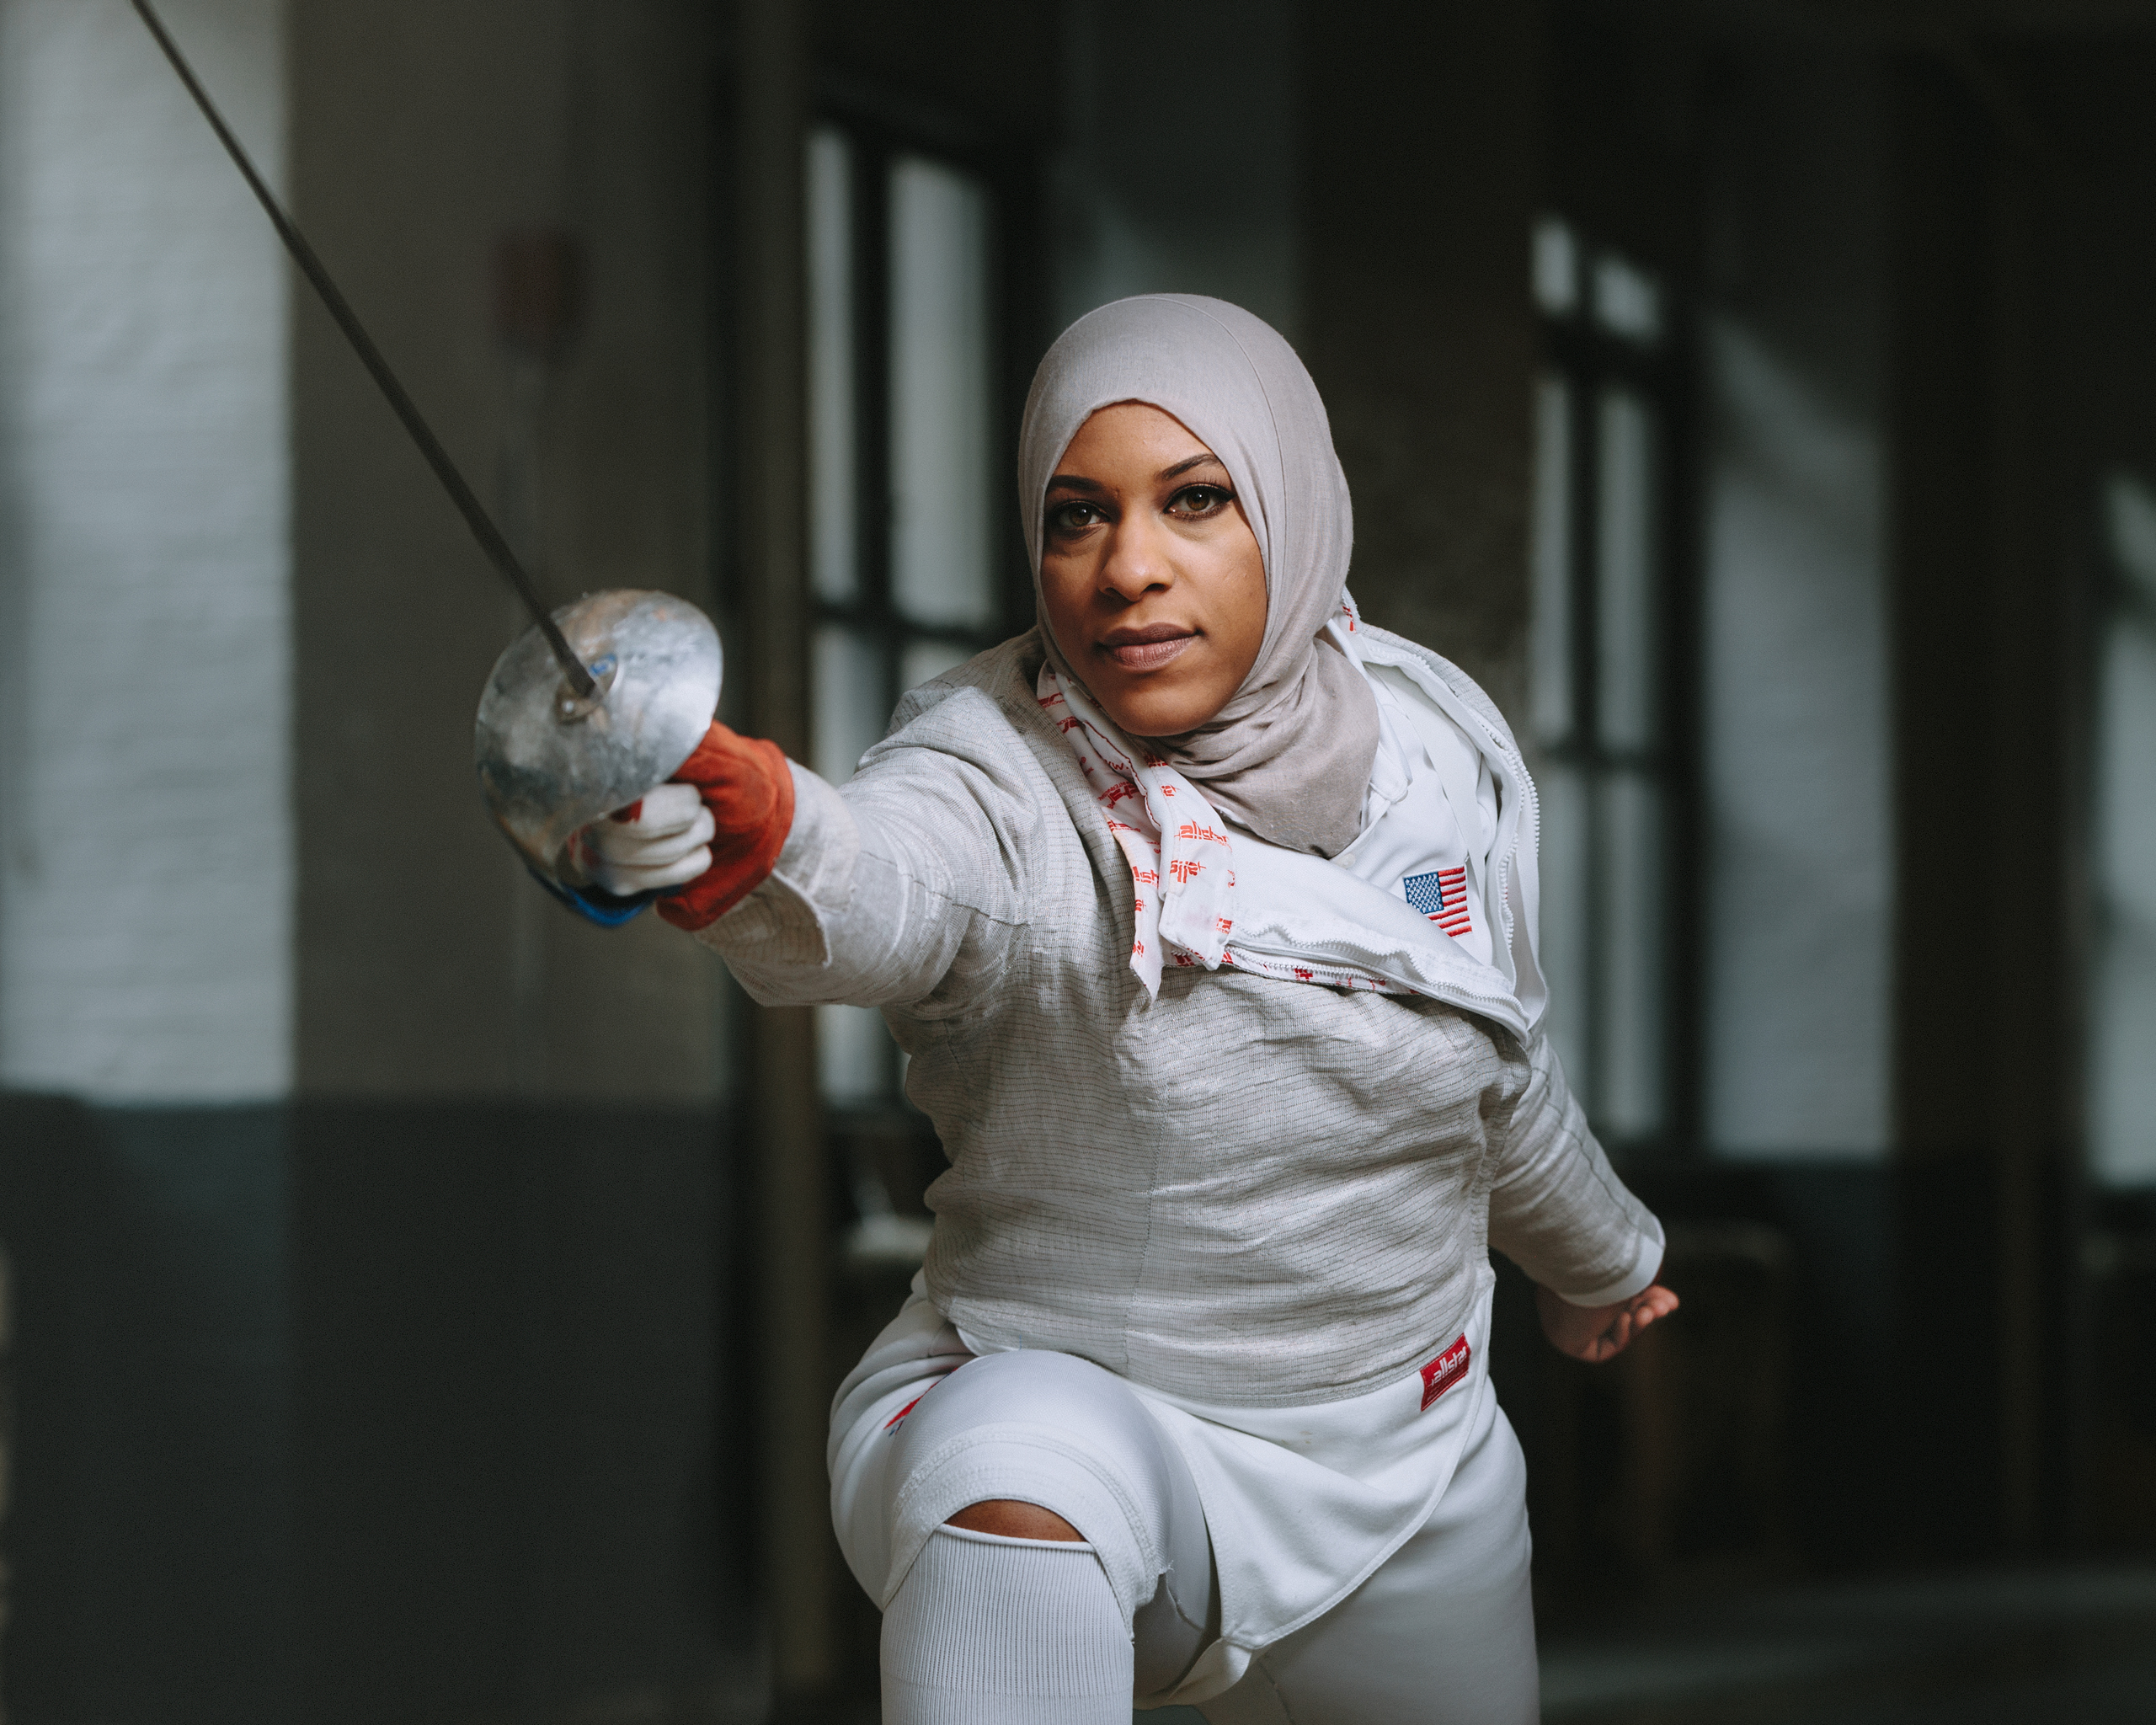 Fencer Ibtihaj Muhammad brings faith and fearlessness to this summer's Olympic Games